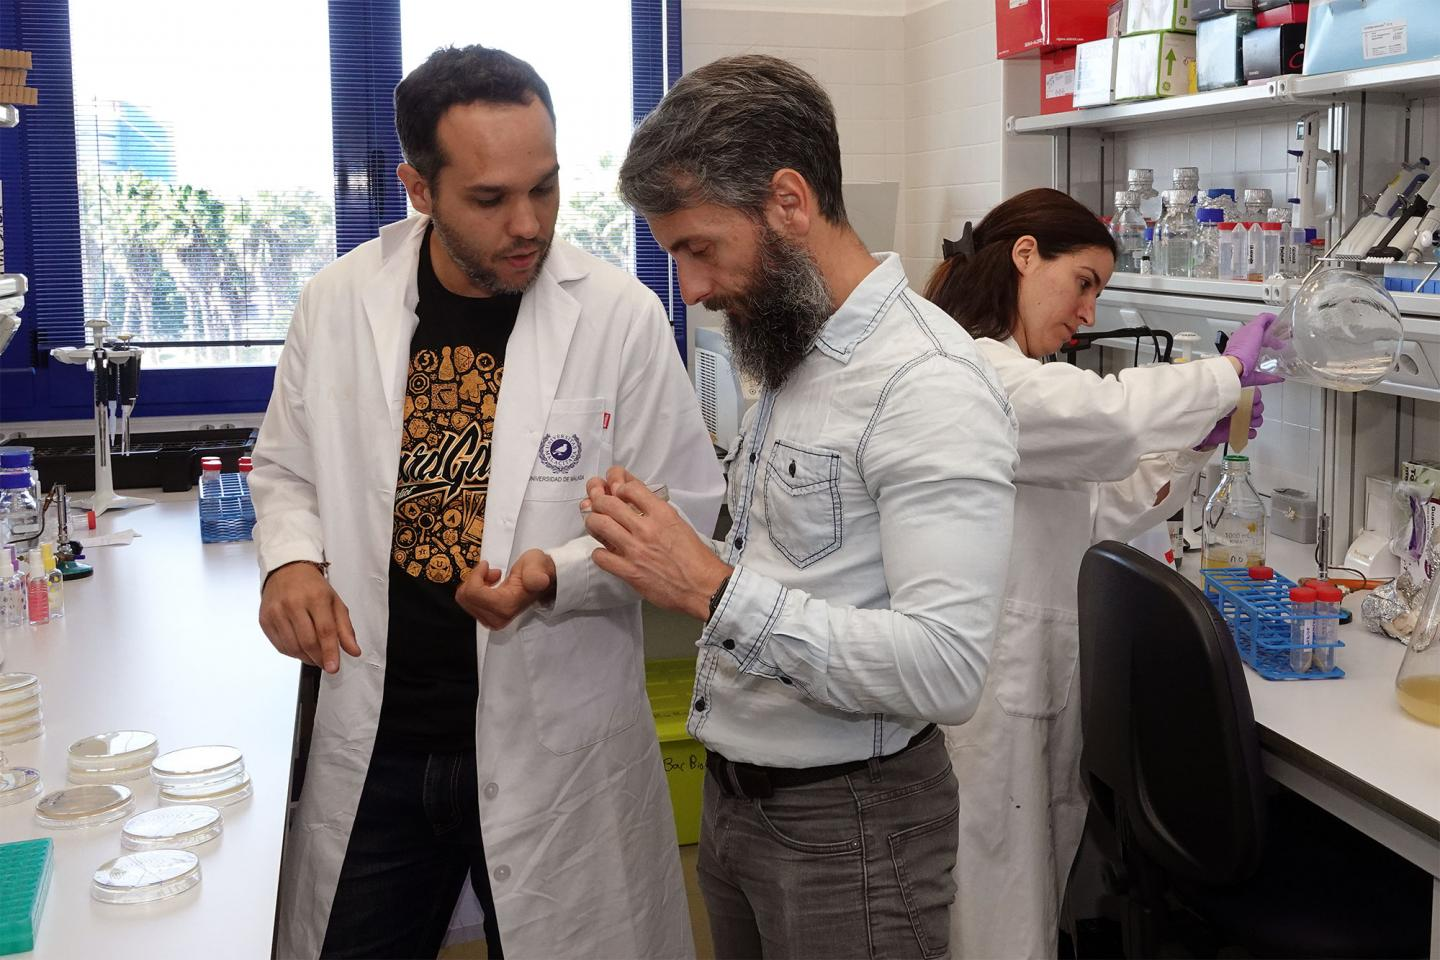 Diego Romero of the UMA, main author of this study, at BacBio Laboratory, where he conducted the research